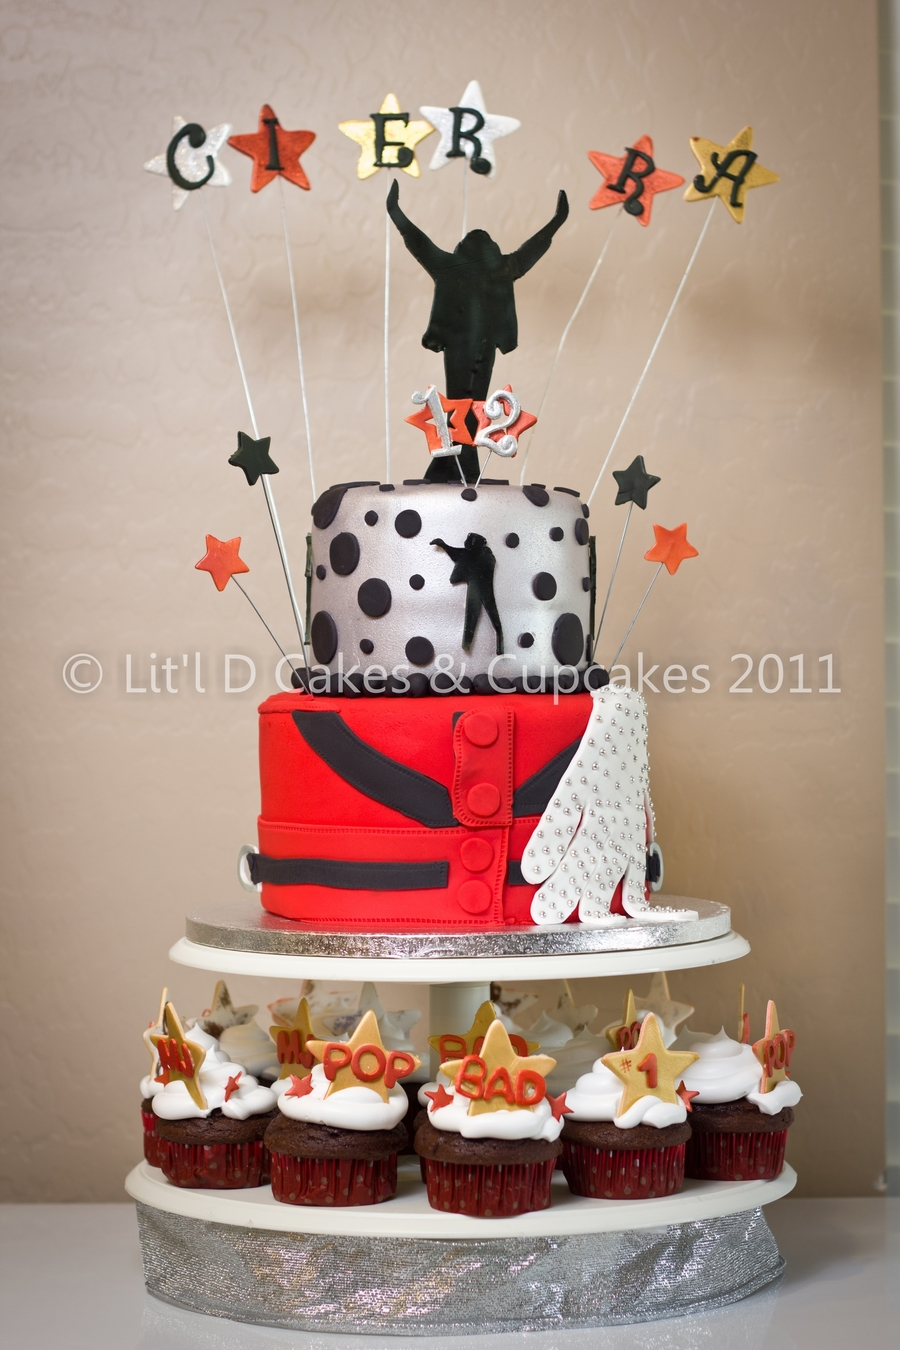 Sensational Michael Jackson Themed Birthday Cake Cakecentral Com Personalised Birthday Cards Cominlily Jamesorg